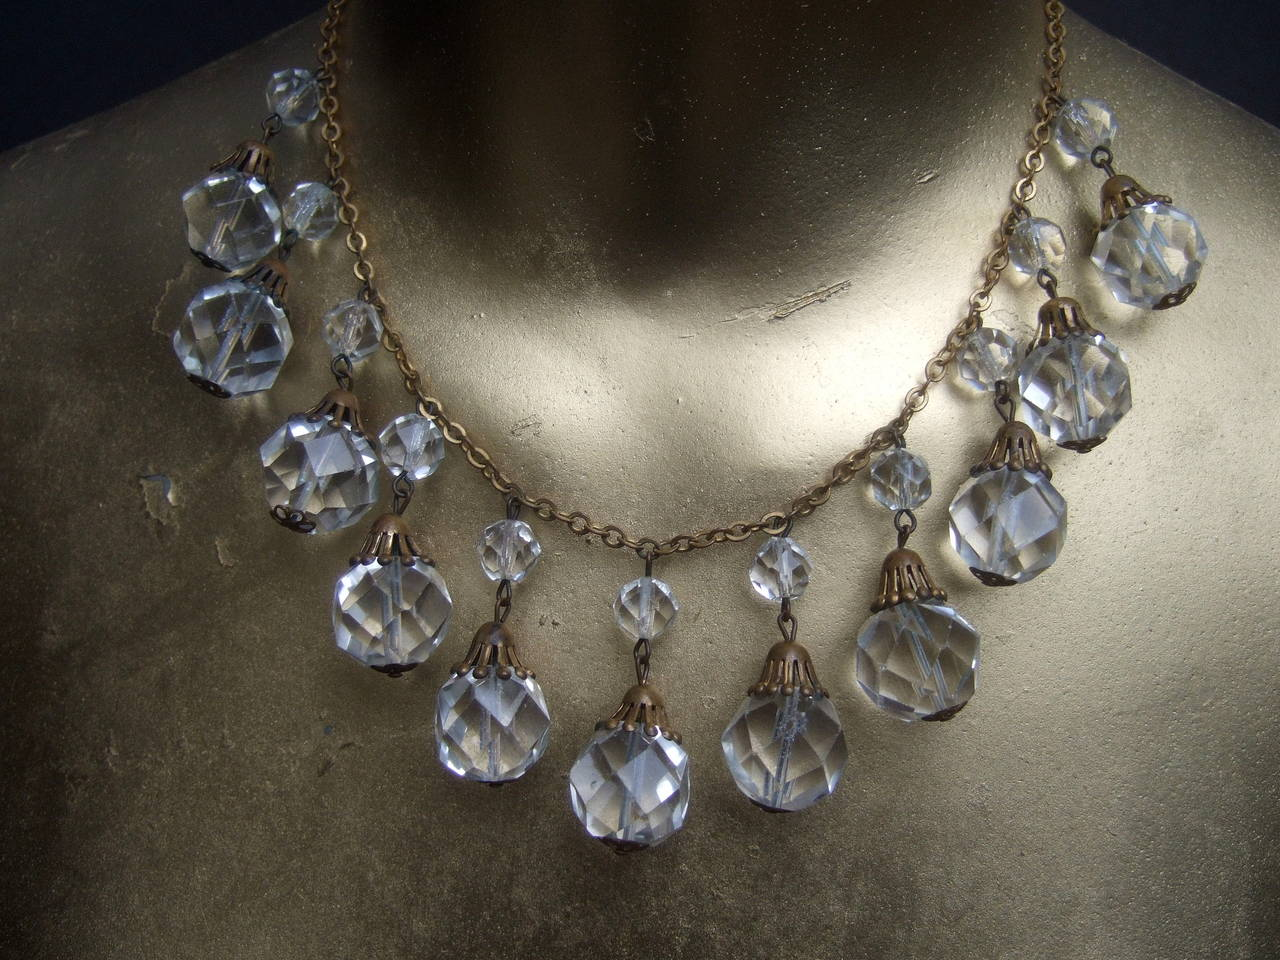 Opulent Art Deco Crystal Drop Necklace c 1940s 8